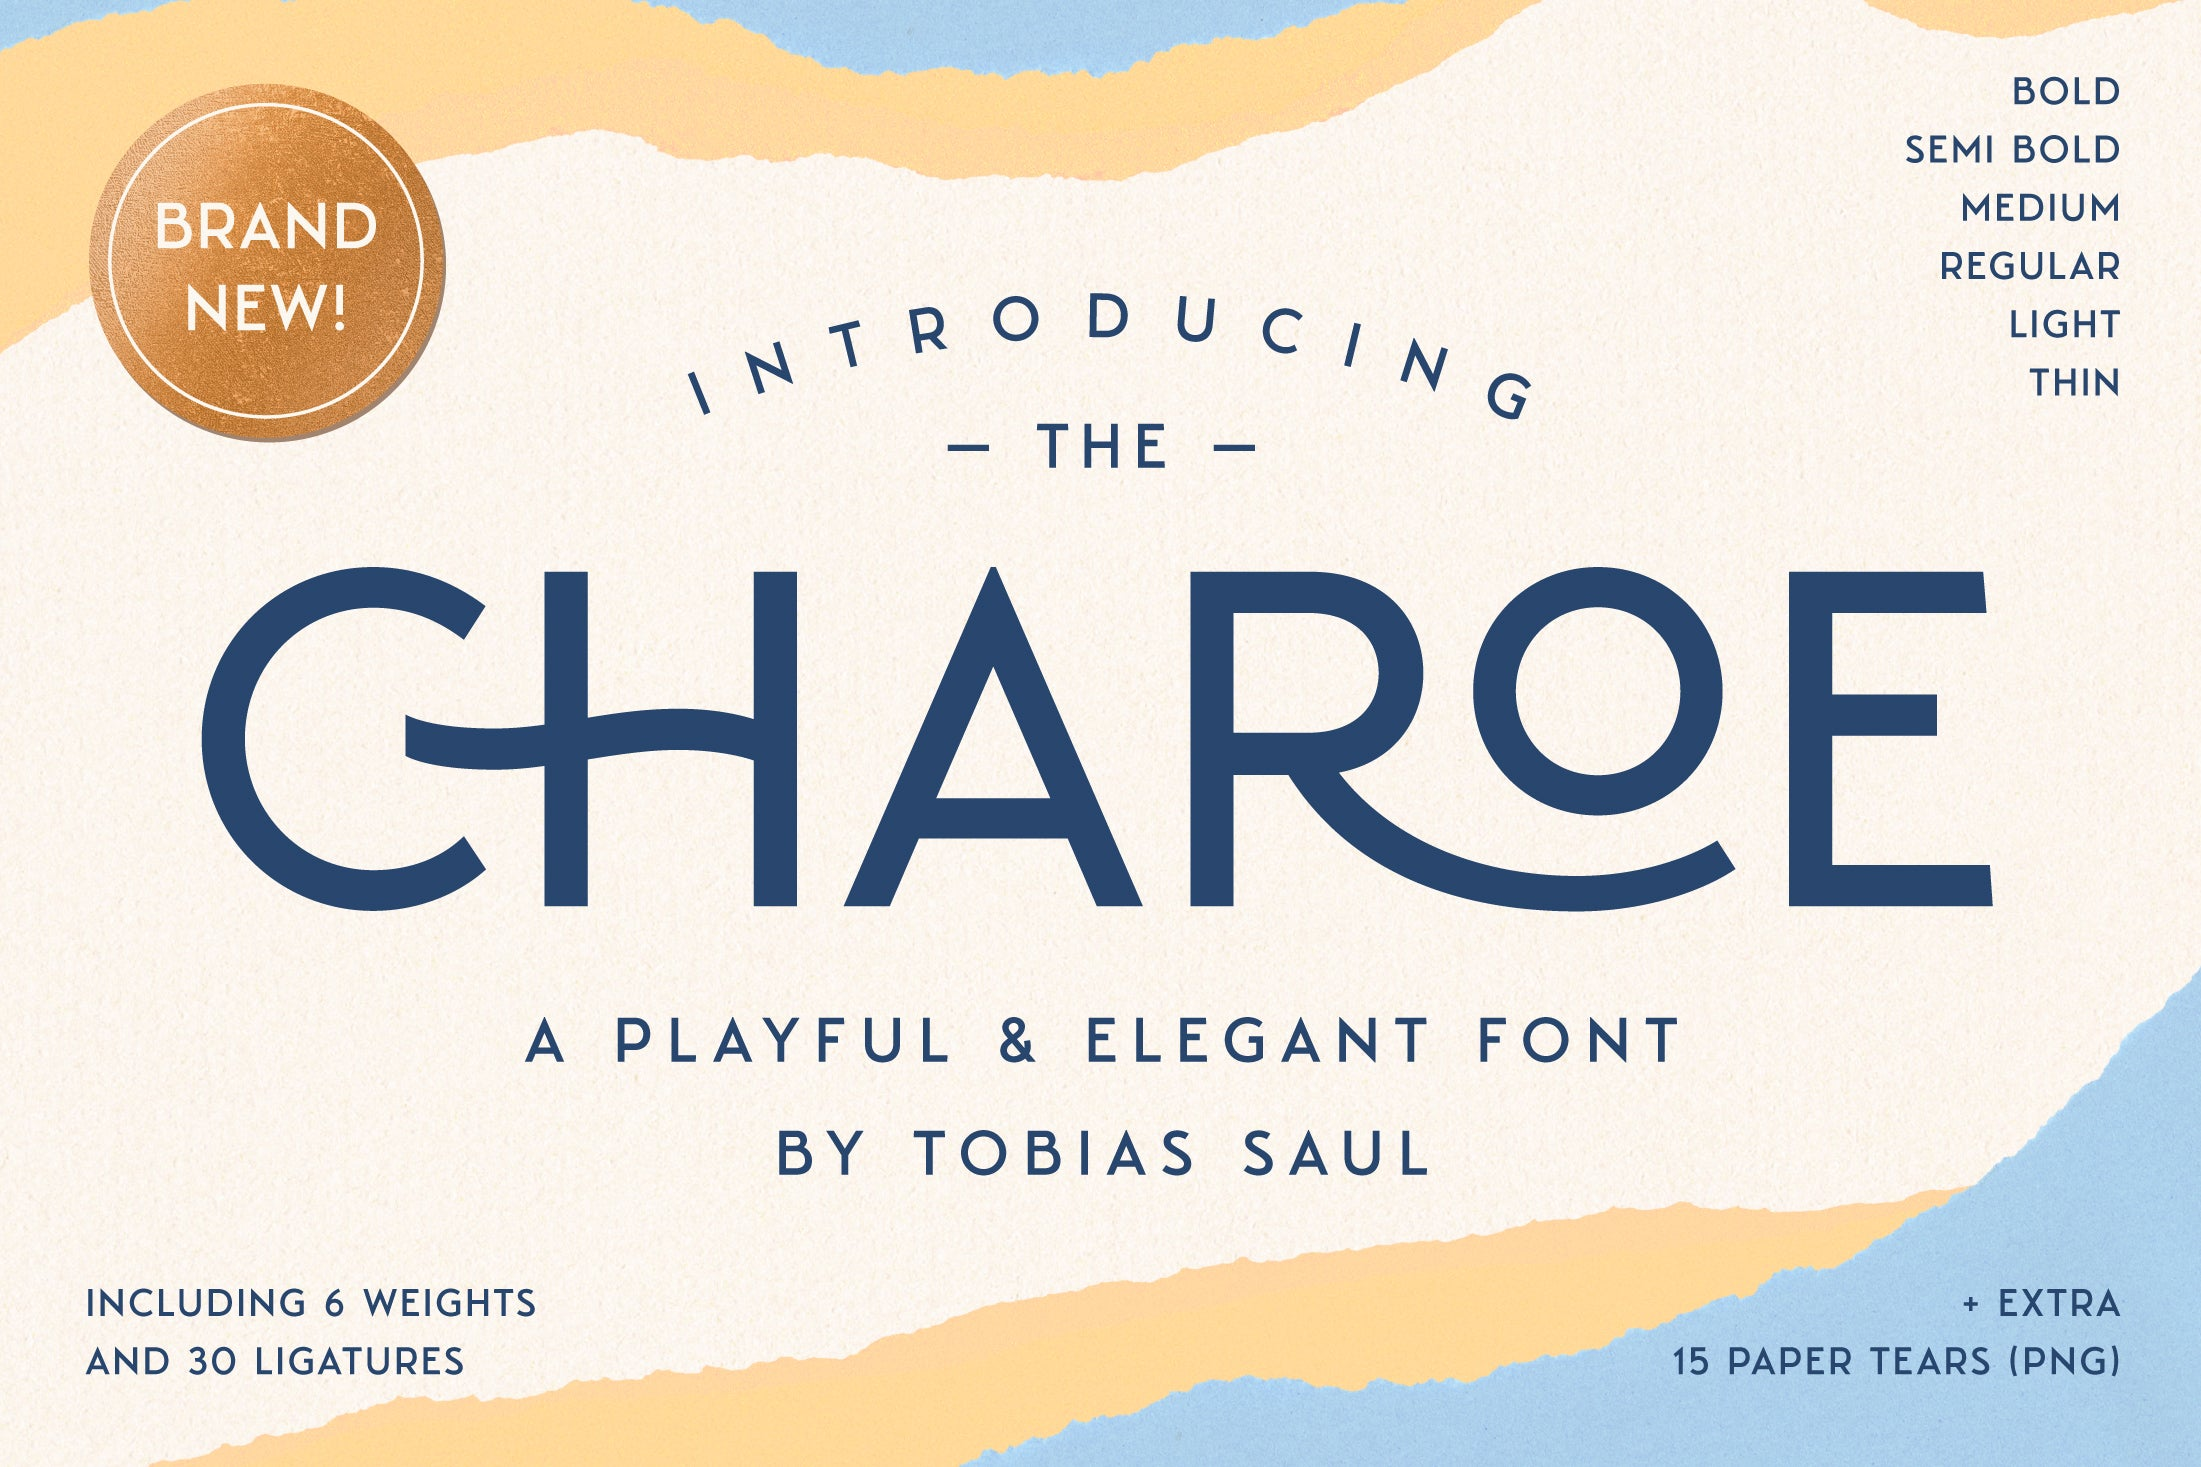 Charoe Typeface + Extras | Sans Serif by Heritage Type Co